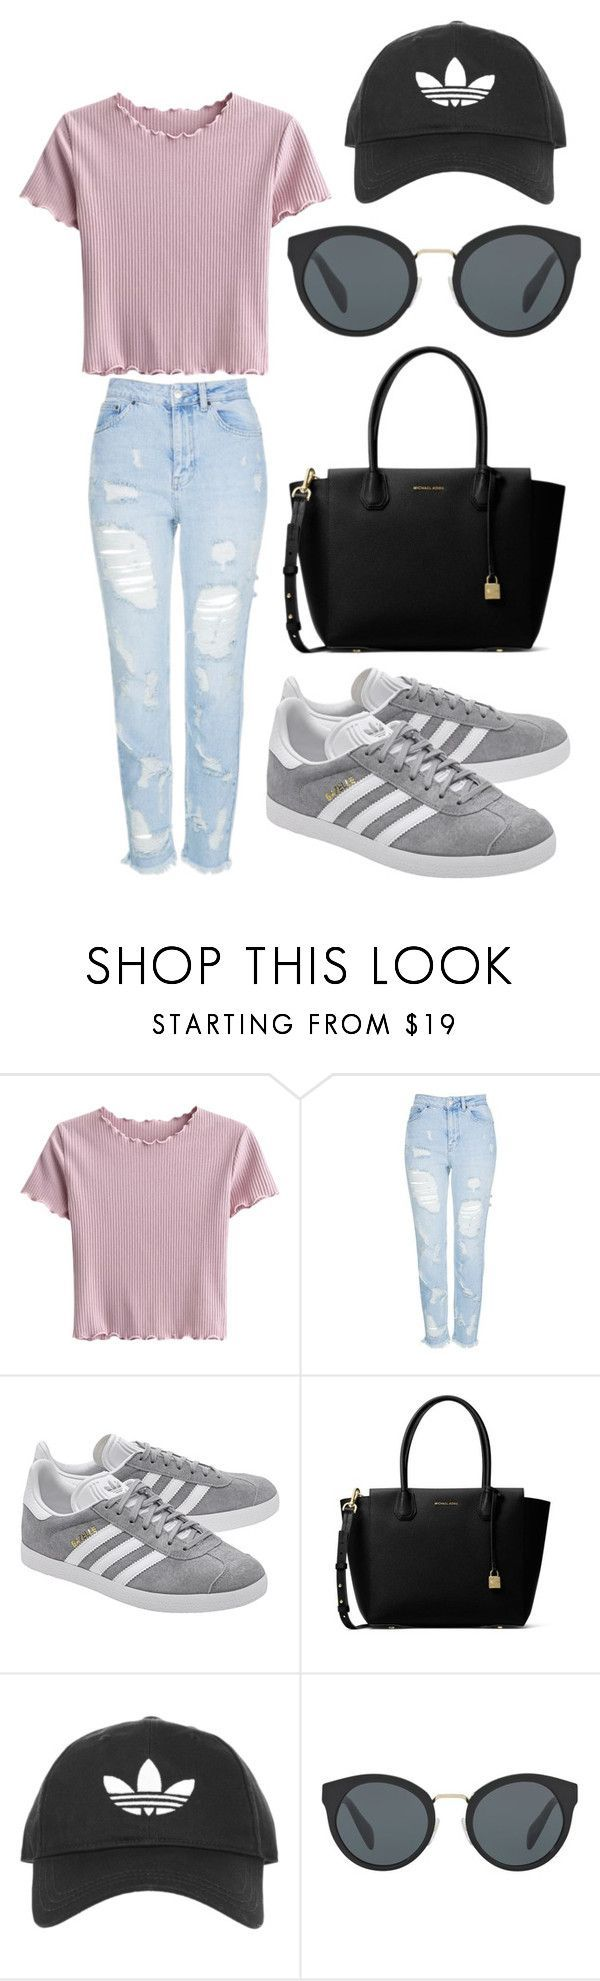 """""""mall day"""" by fashionblogger2122 on Polyvore featuring Topshop, adidas Originals, MICHAEL Michael Kors and Prada http://amzn.to/2stx5H7"""